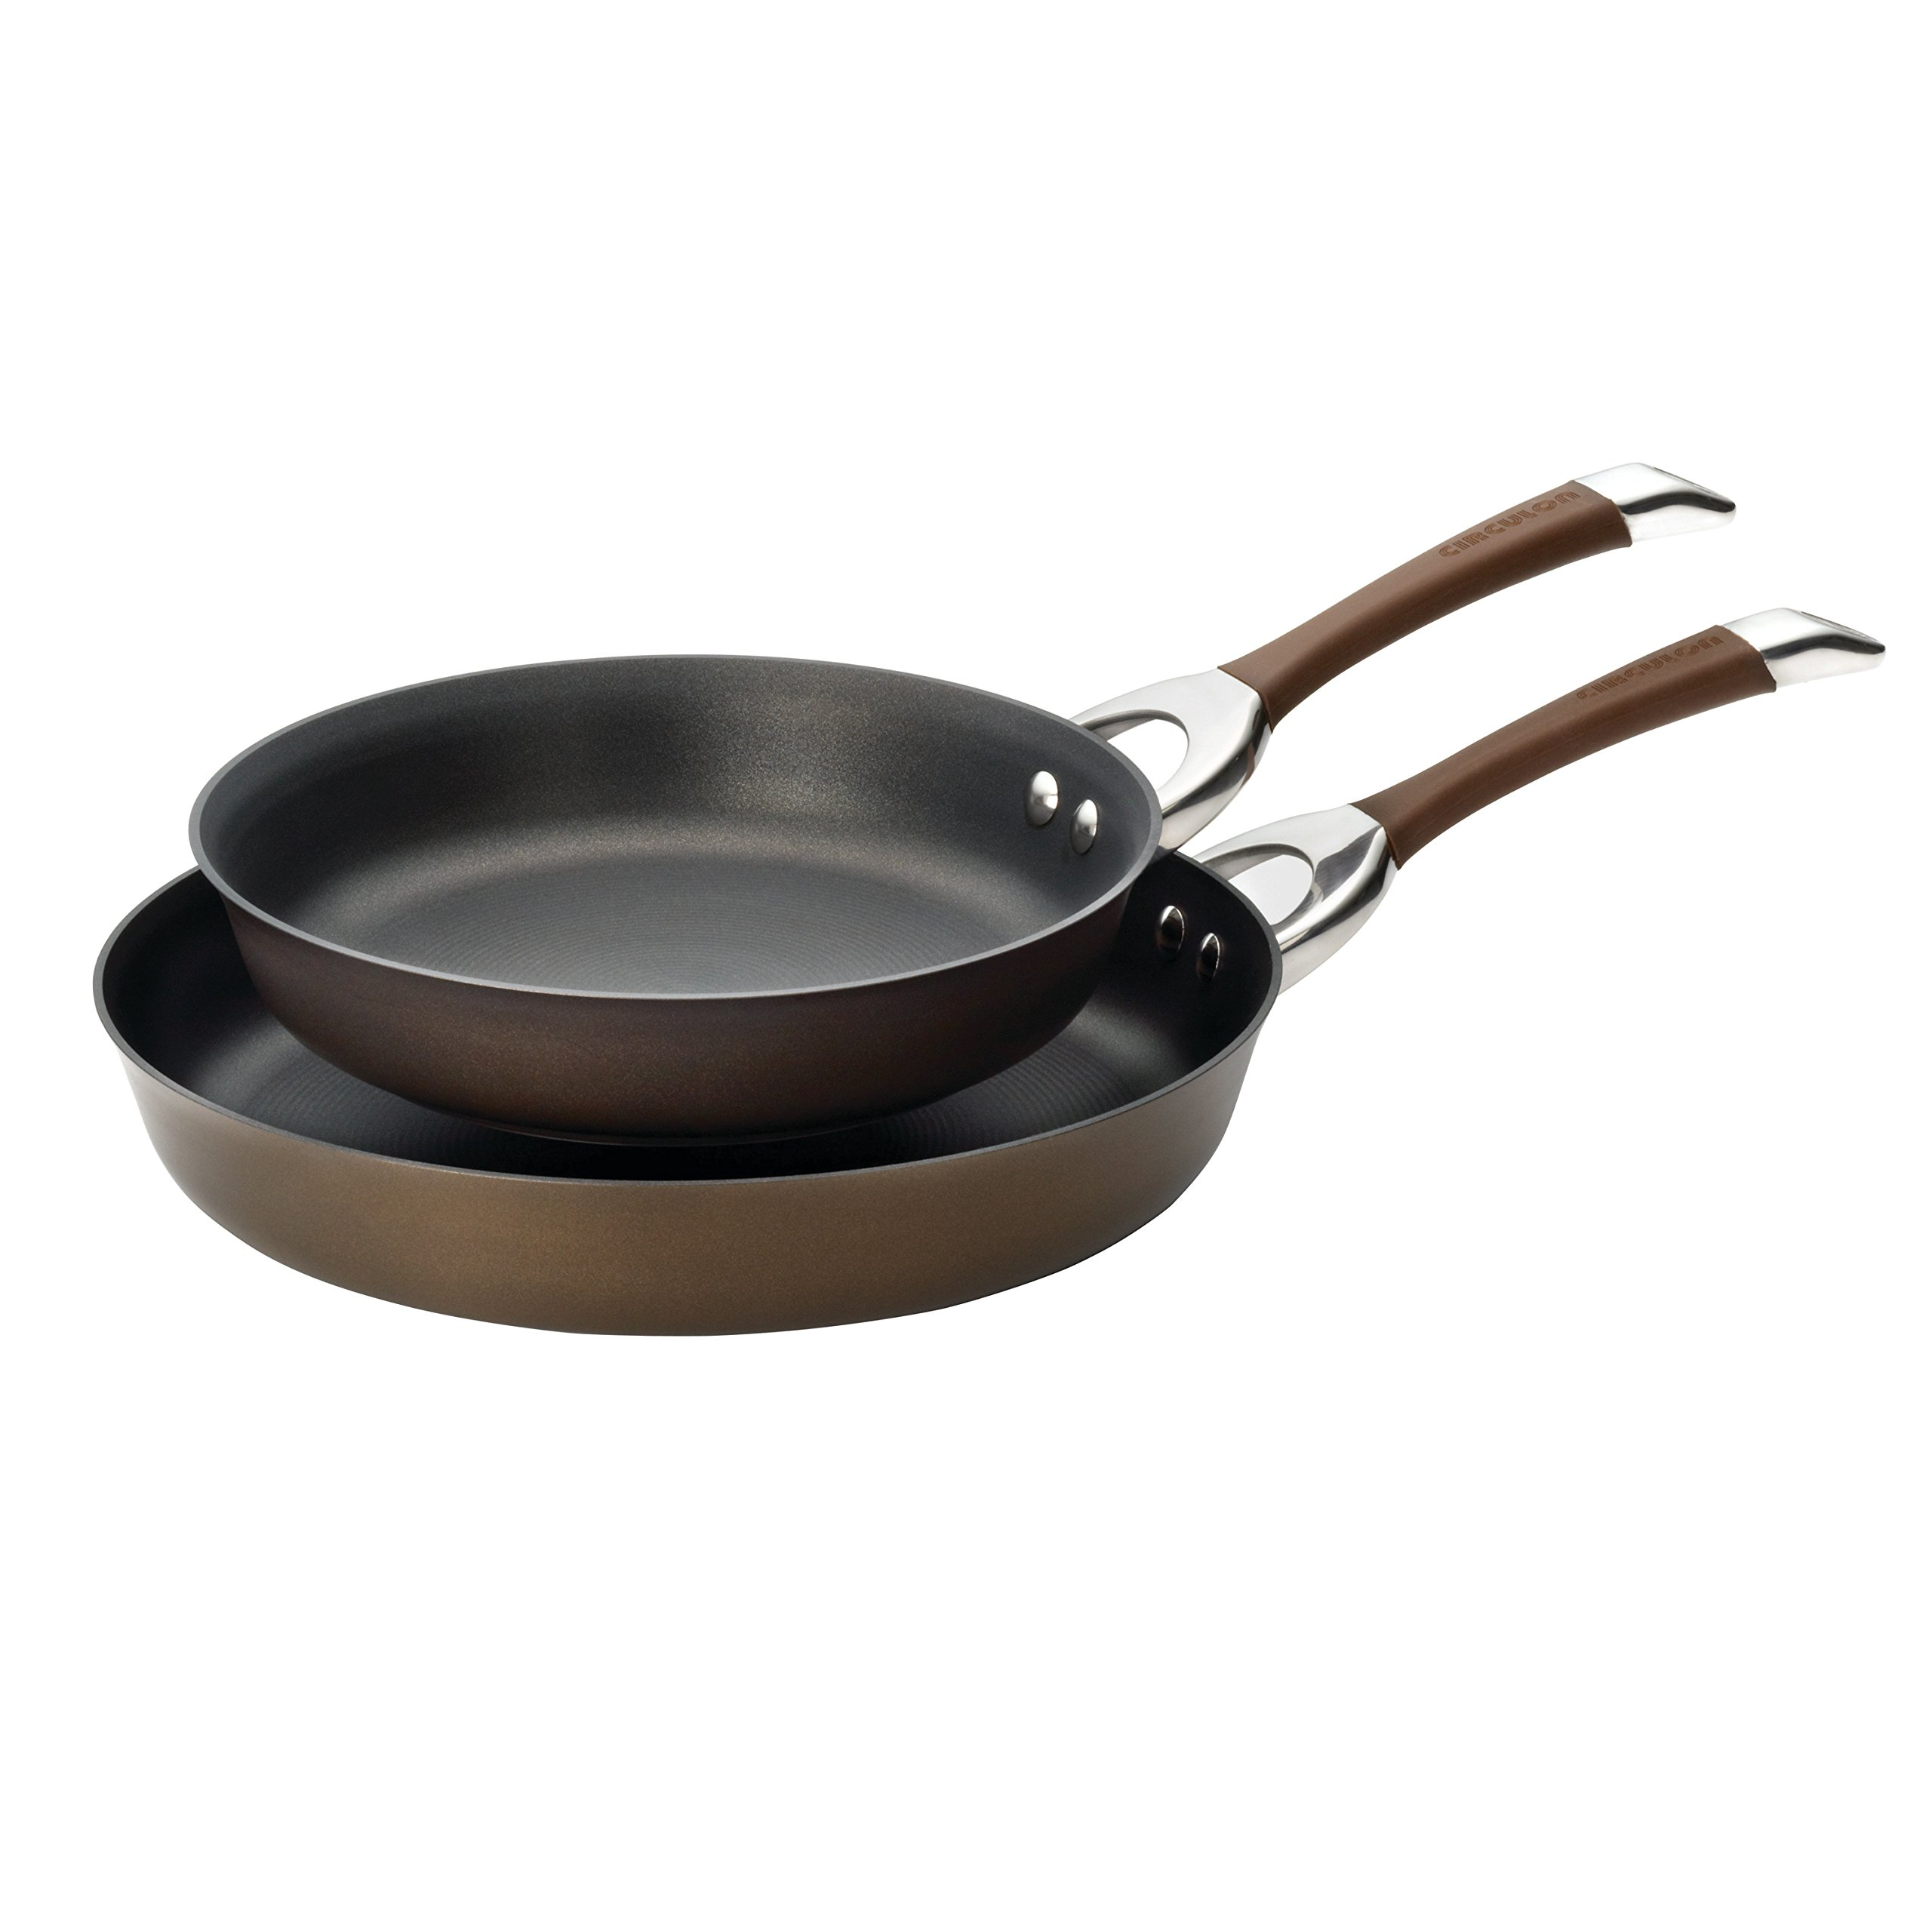 Circulon Symmetry Hard-Anodized Nonstick 10-Inch and 12-Inch French Skillets, Chocolate by Circulon